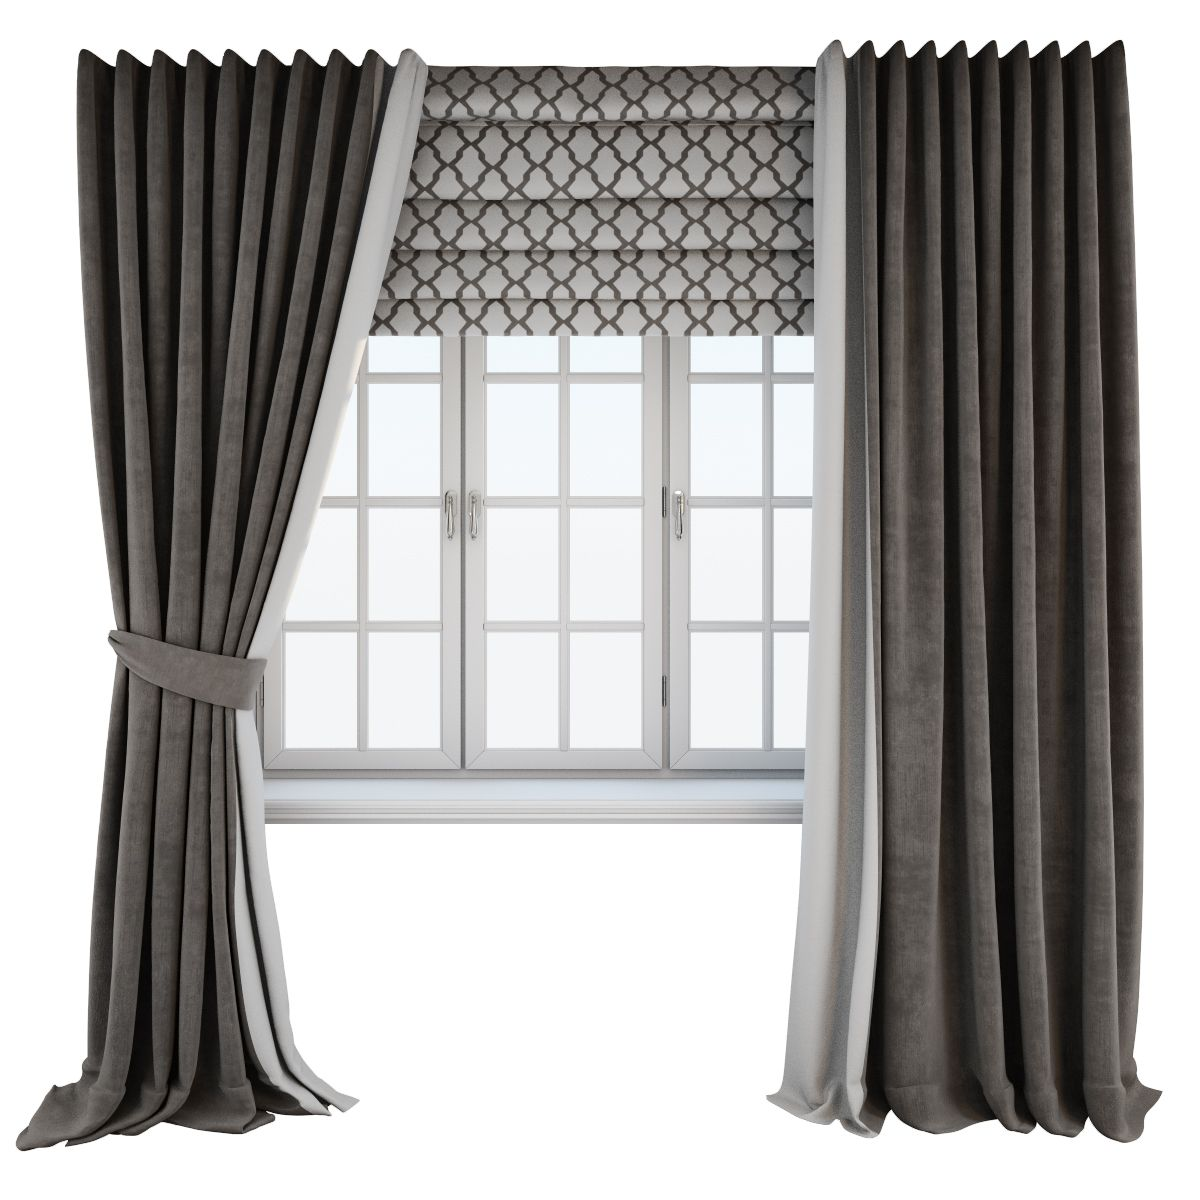 Dark Brown Floor Length Curtains Straight And With A Tieback Roman Curtain With A Geometric Pattern Brown Floors Dark Brown Floor Brown Curtains